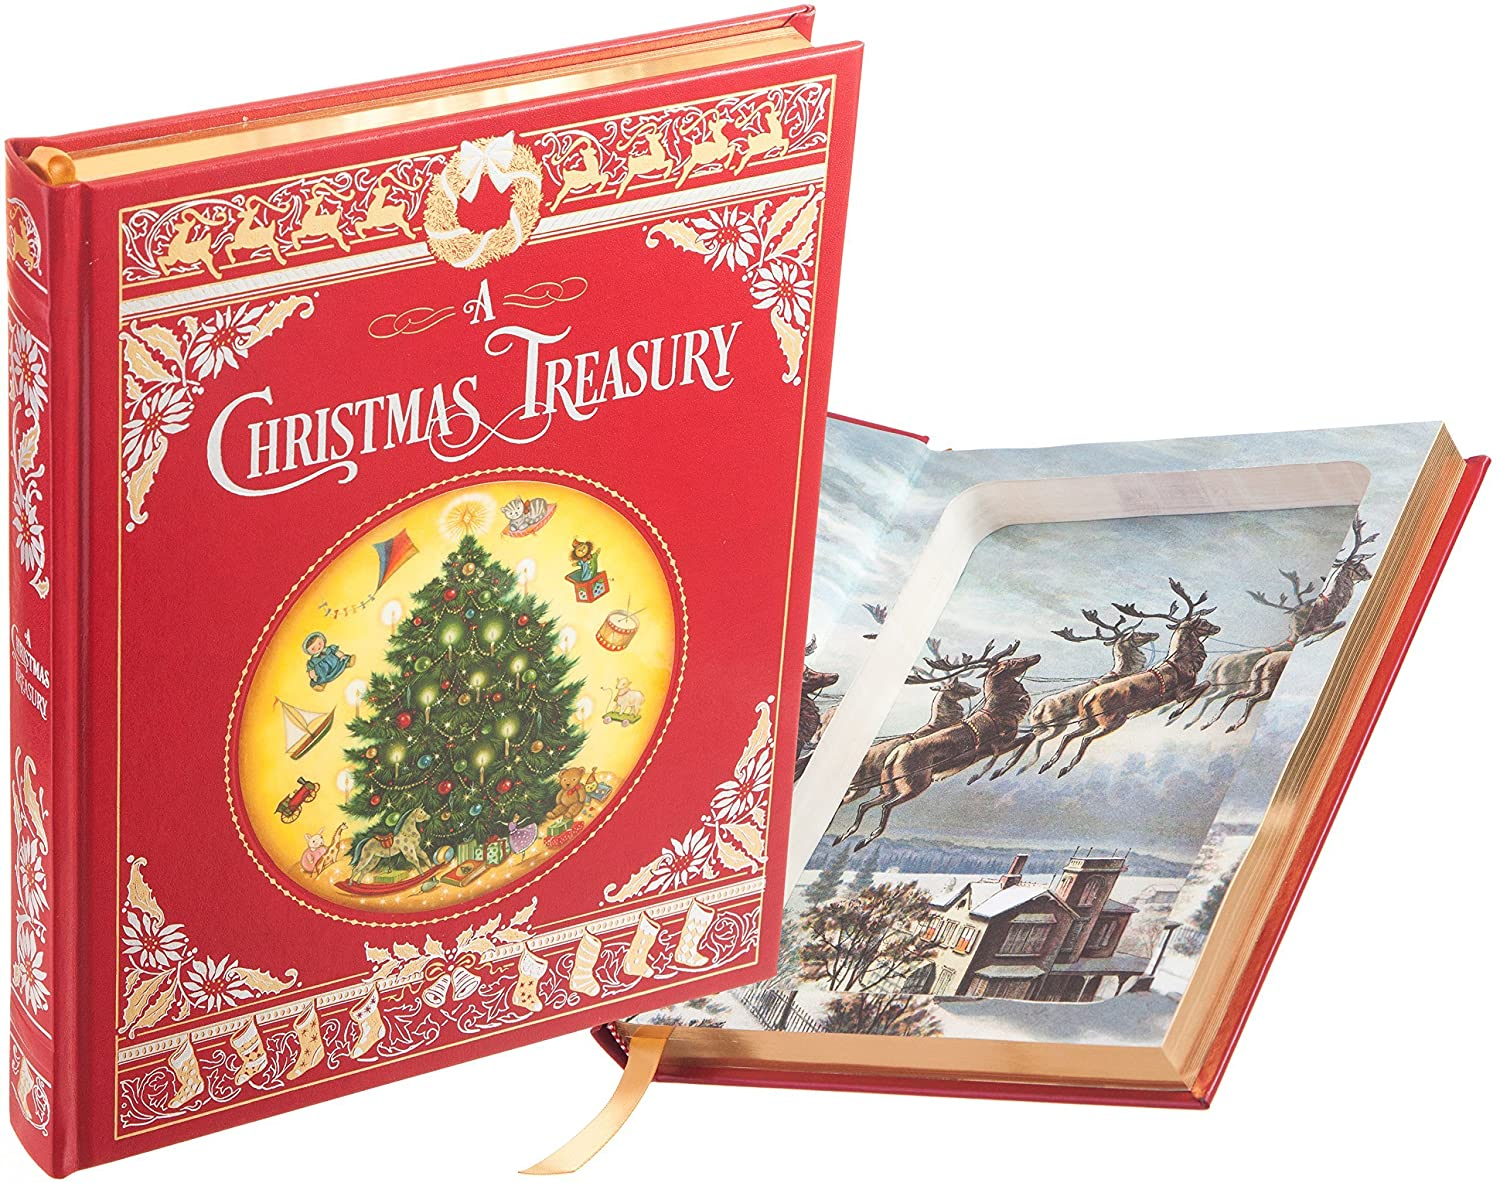 Hollow Book Safe - A Christmas Treasury (Leather-bound)